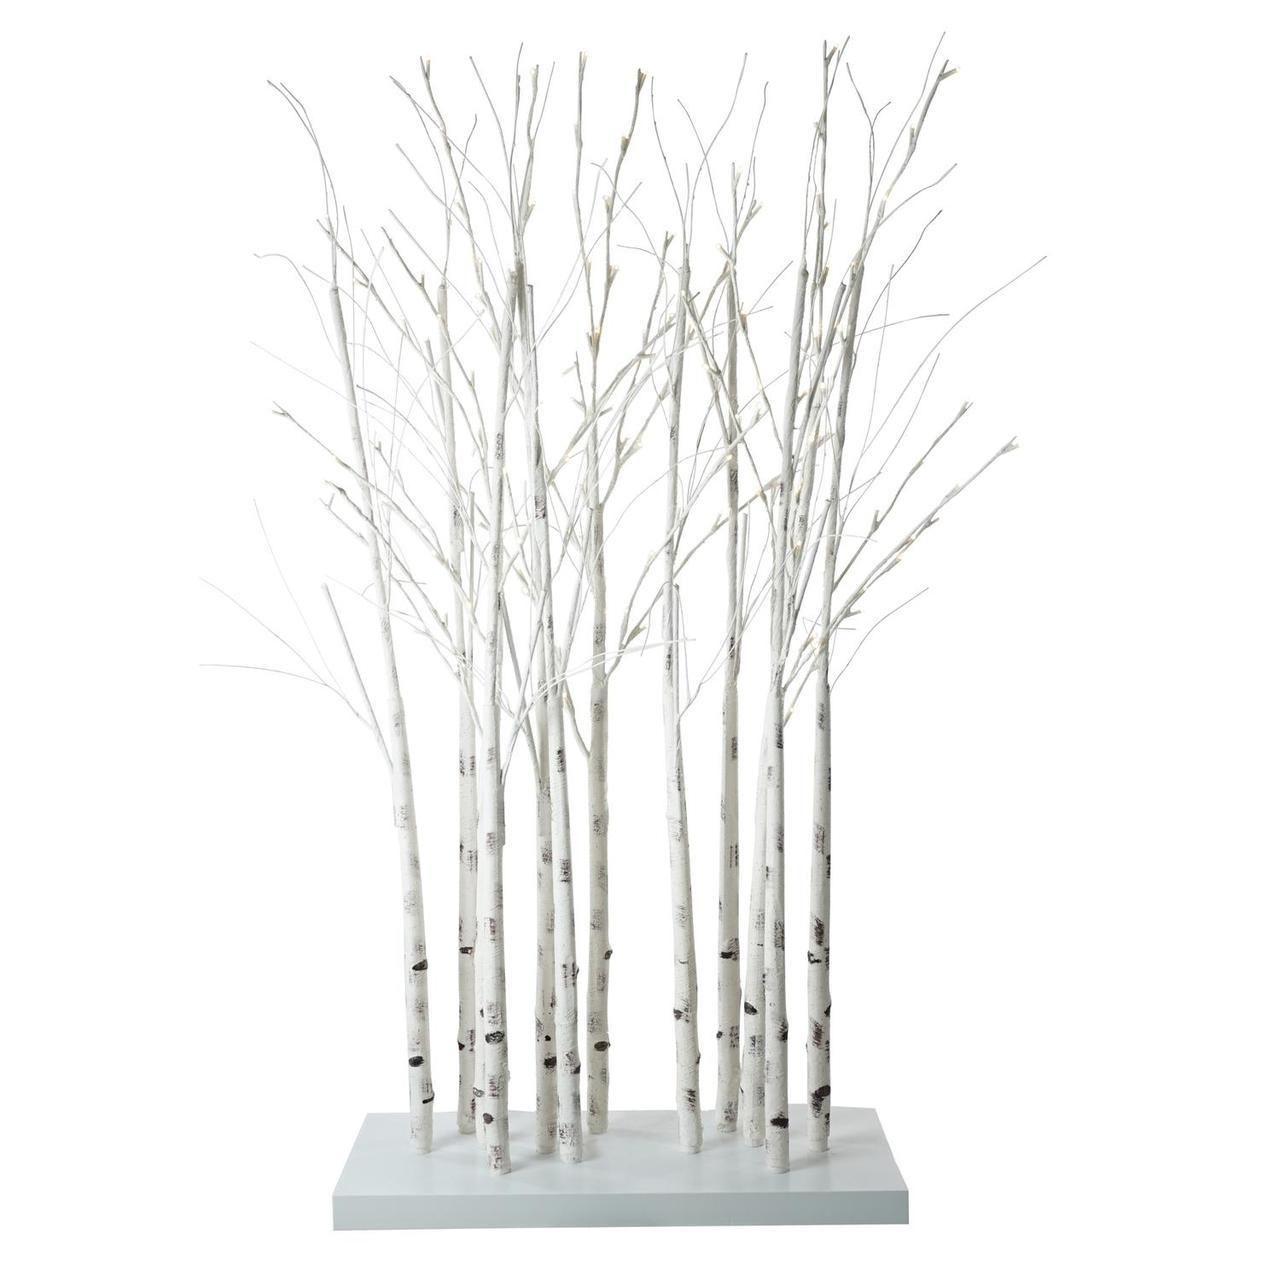 4' LED Lighted White Twig Tree Cluster Outdoor Christmas Yard Art  Decoration - 31740169